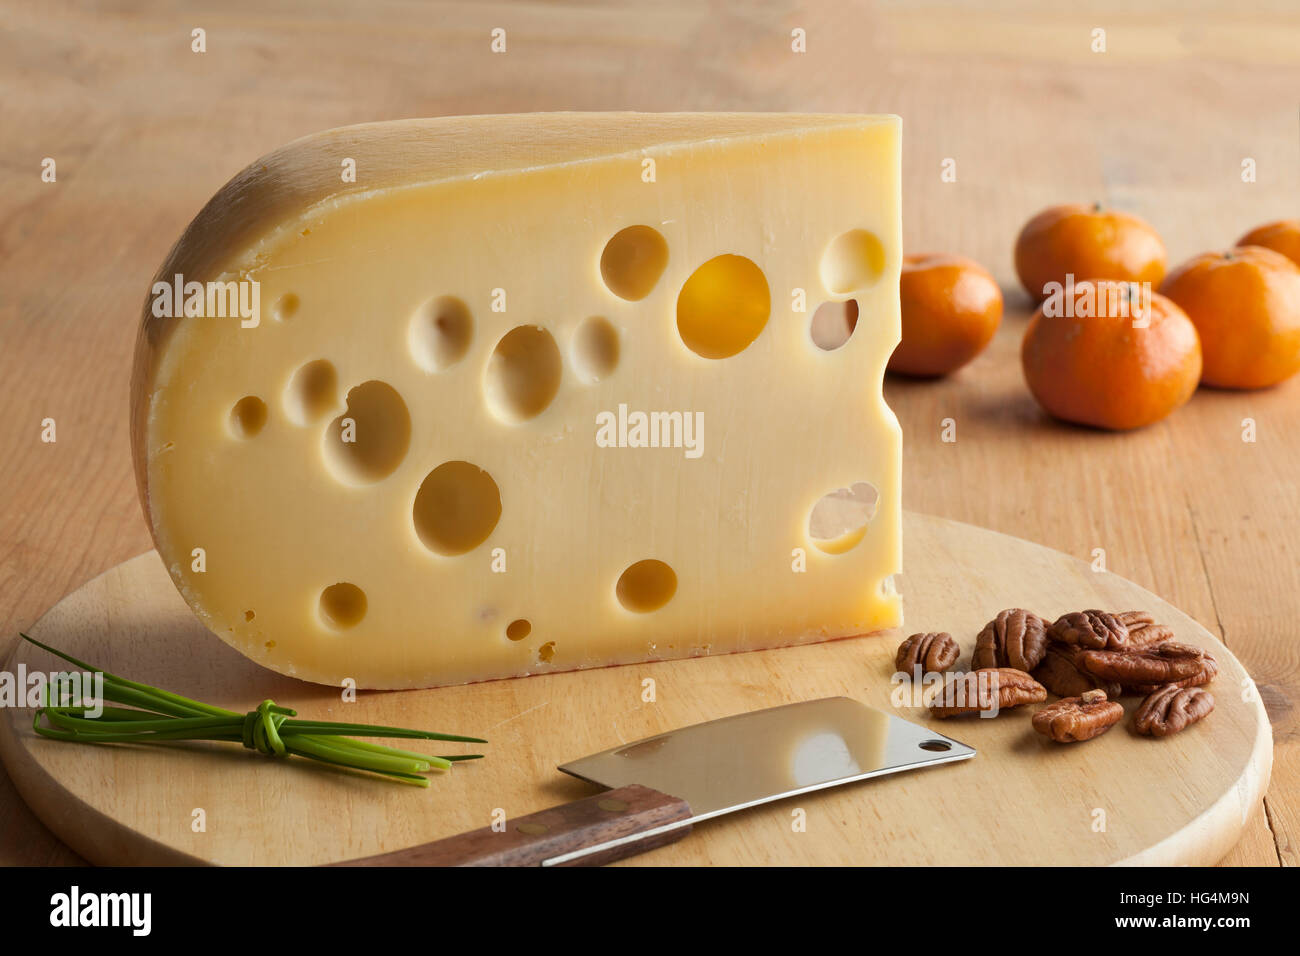 Piece of emmenthaler cheese on a cutting board with nuts and mandarins - Stock Image